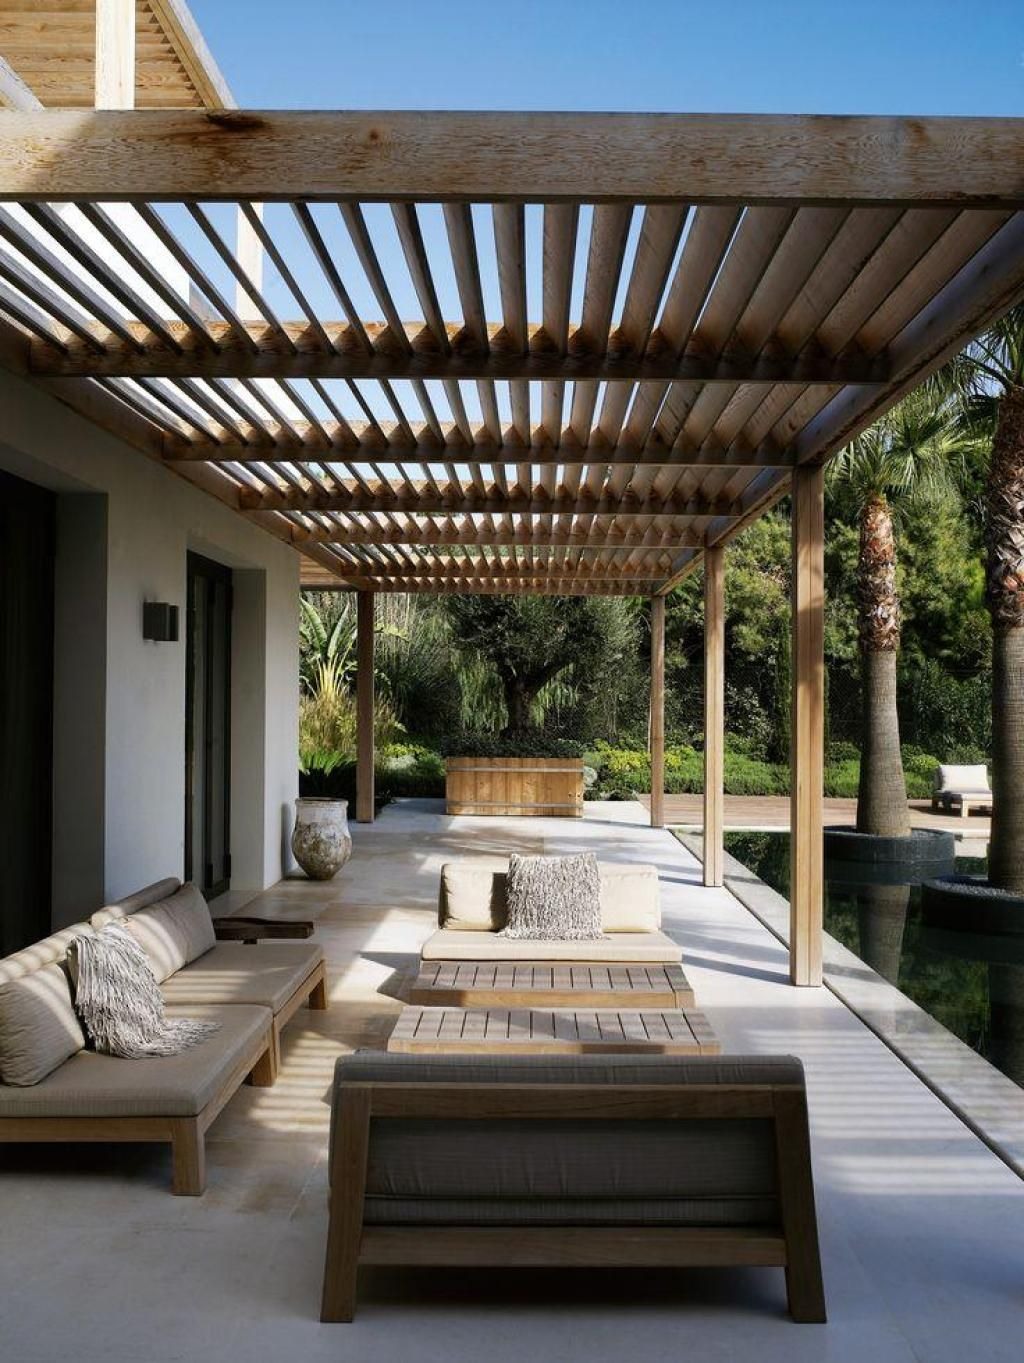 pin by emily mcguire on gardens | modern patio design